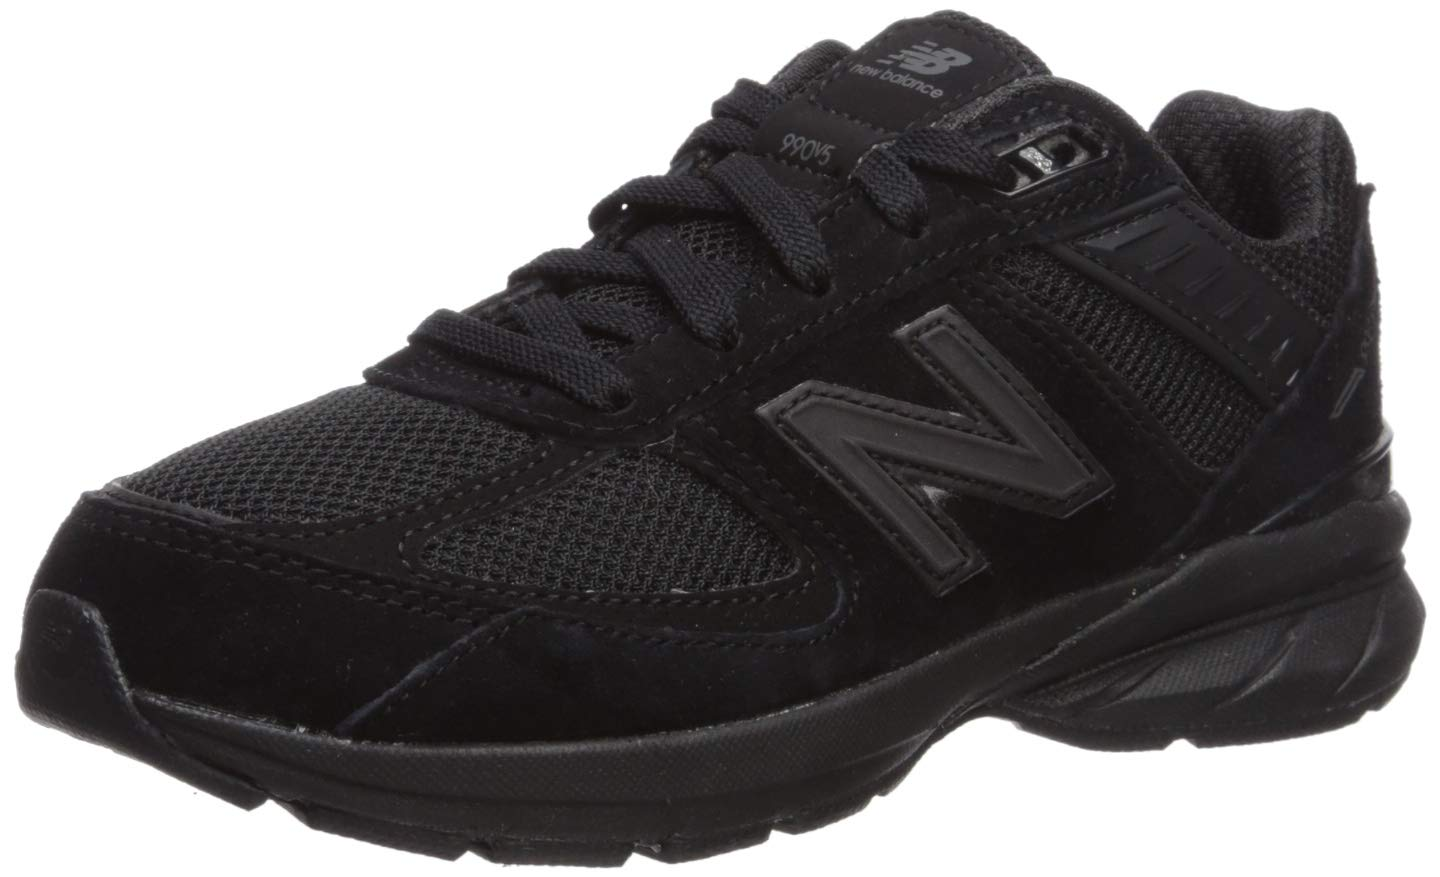 New Balance Boys' 990v5 Running Shoe, Black, 10.5 XW US Little Kid by New Balance